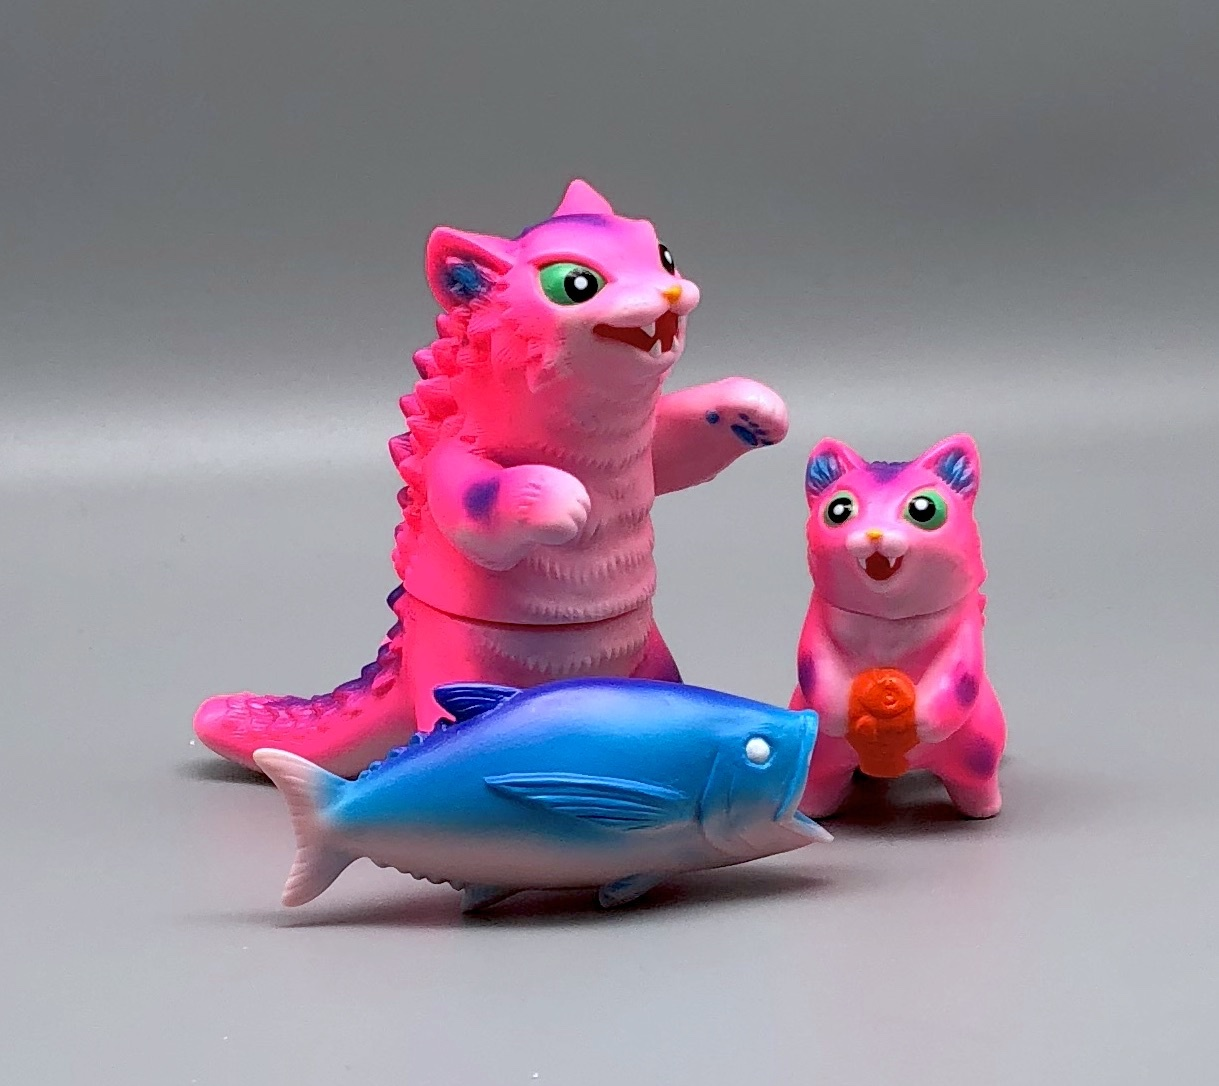 Max Toy Pink Pico Pico Negora, Micro Negora and Fish Set - Rare